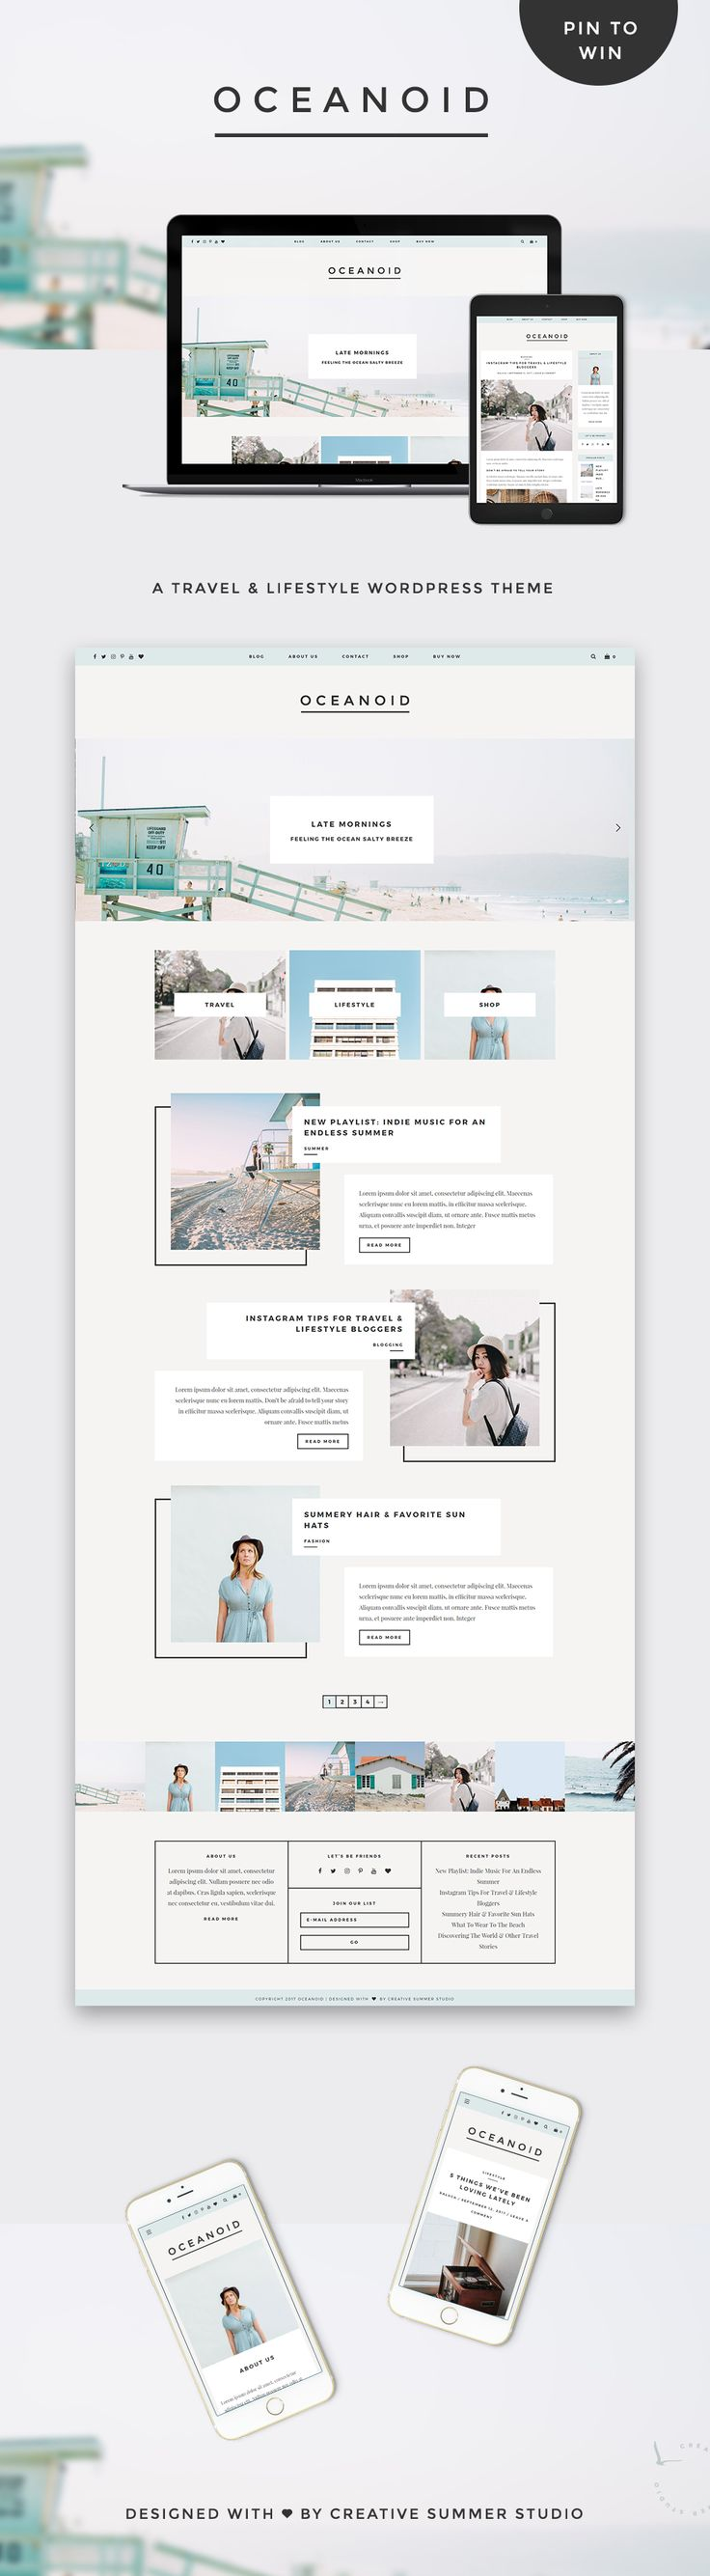 Meet Oceanoid WordPress theme, a minimalist and gorgeous blog layout. With a unique minimal design, subtle bold & masculine touches, and focus on typography, this theme was crafted for the creative lifestyle & travel bloggers. Multiple layouts, lots of styling options, a gorgeous slider and custom promo boxes that can be added to the right places are some of the features that will make Oceanoid theme help you to showcase your content and to tell your beautiful stories through meaningful design.